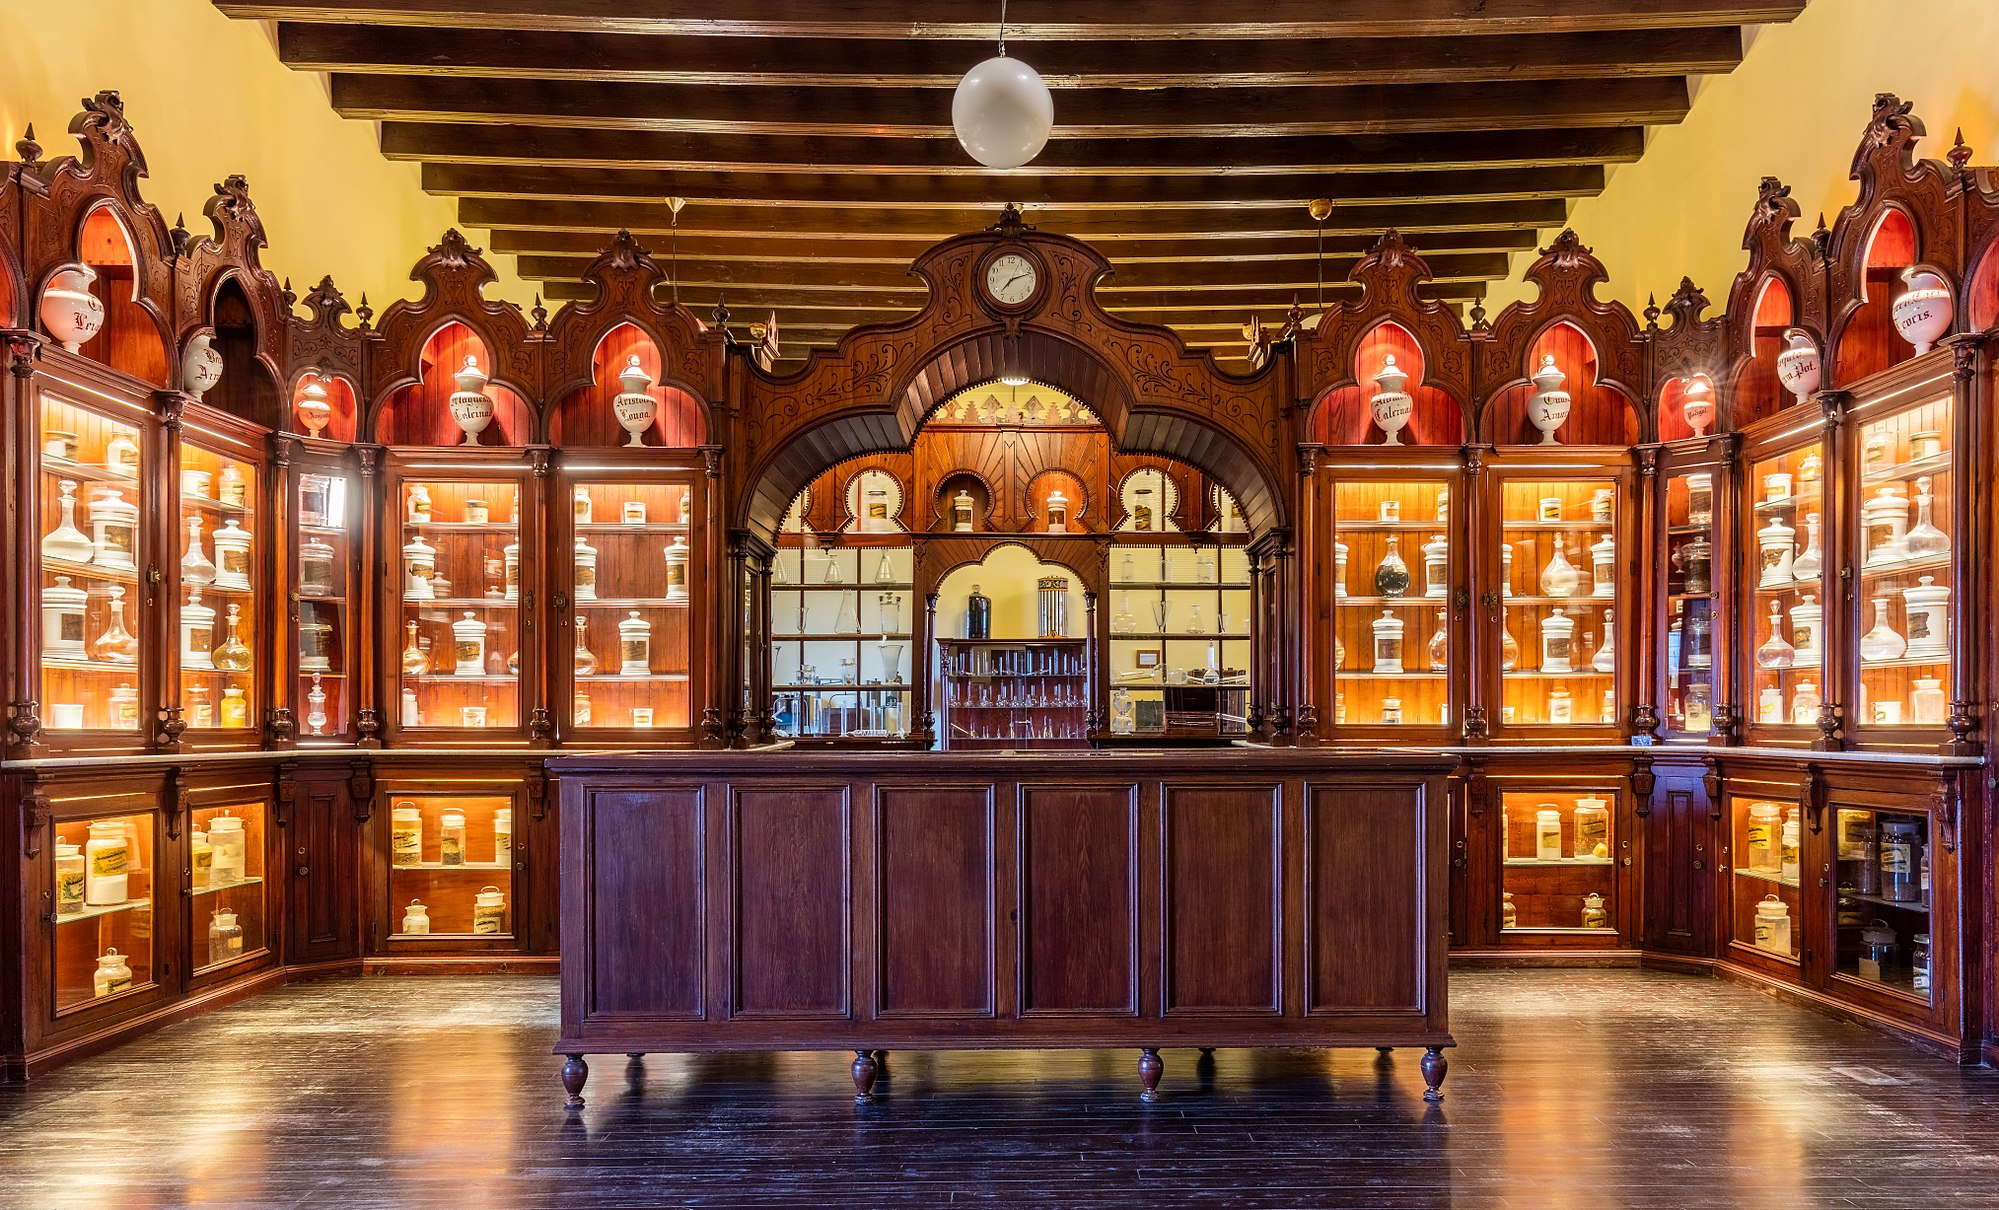 Former municipal pharmacy of Jerez de la Frontera, Andalusia, Spain. The pharmacy dates from 1841 and used to serve to the former Hospital de La Merced. The pharmacy is located in the second floor of the Palace of Villavicencio, which is situated within the Alcazar of Jerez de la Frontera.